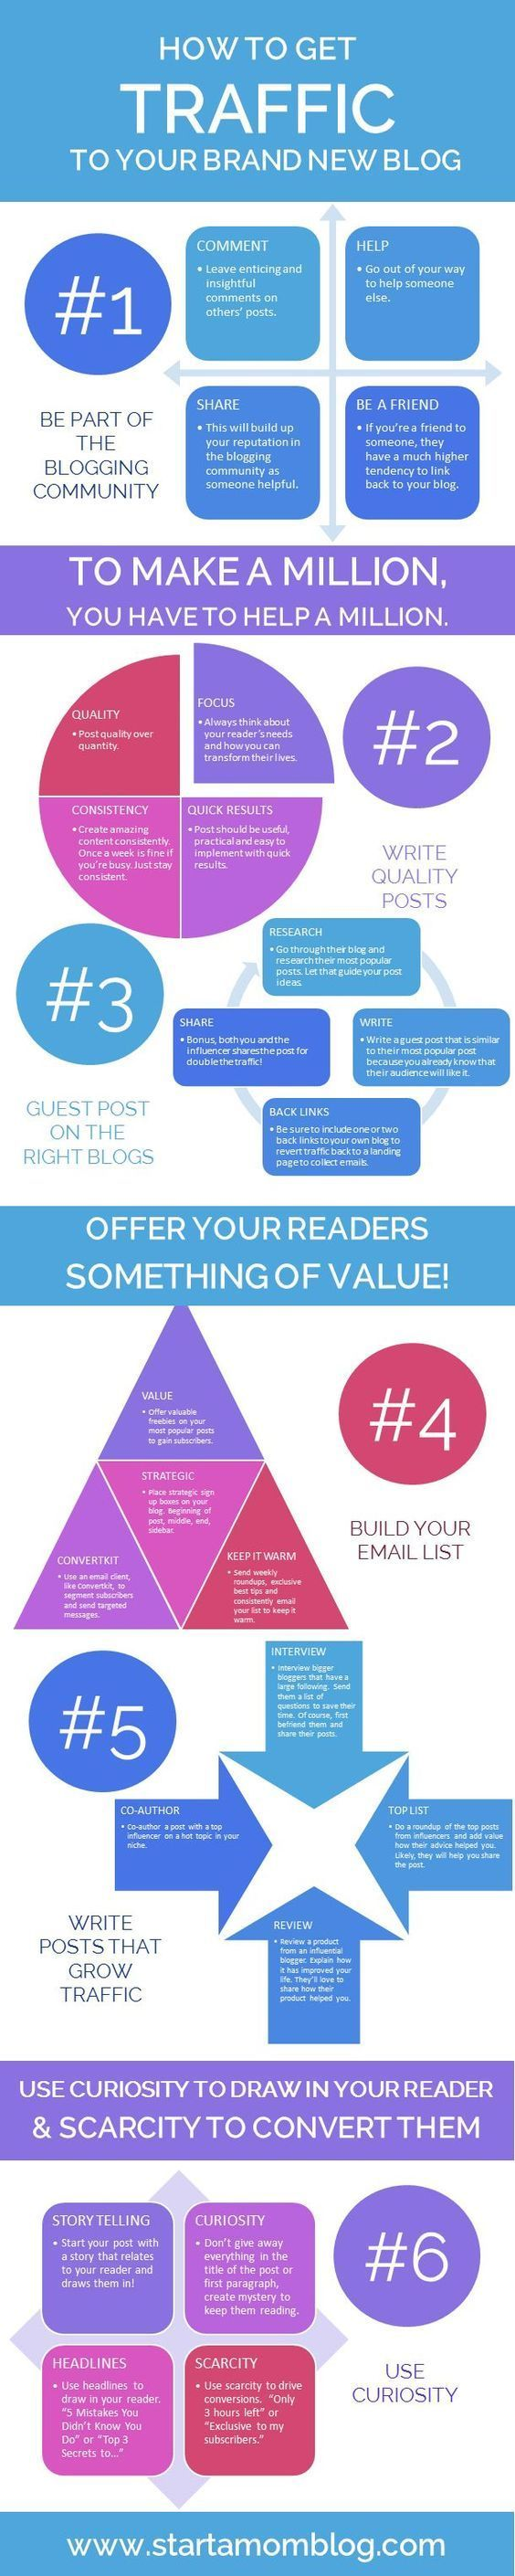 6 Easy Steps to Generate Traffic to Your New Blog [Infographic]